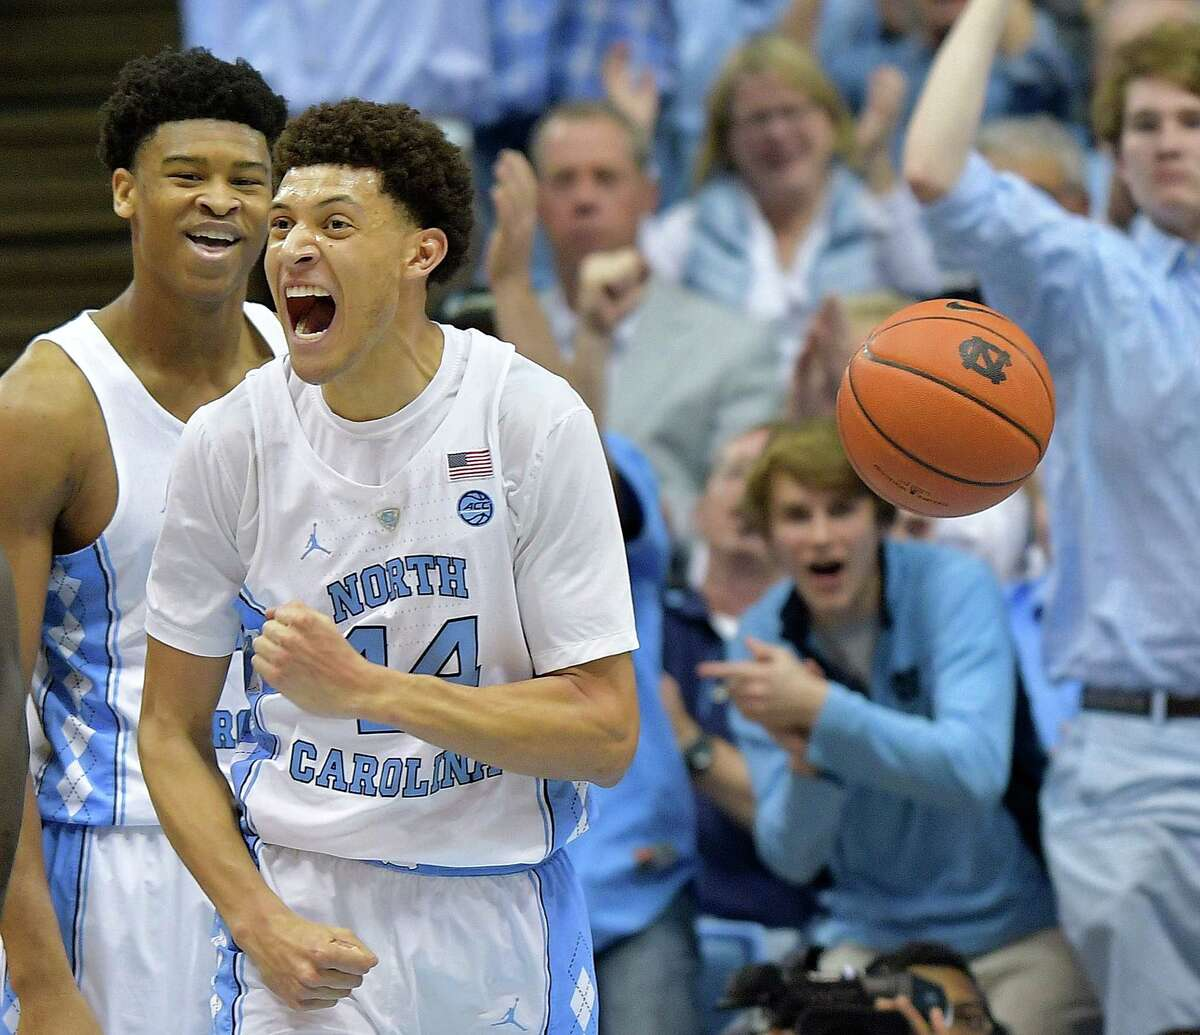 HOUSTON PLAYERS IN NCAA TOURNAMENT Justin Jackson, North Carolina Home School Christian Youth Association The Tomball native was named the ACC Player of the Year this season. The 6-foot-8 junior averages 18.3 points and 4.7 rebounds per game. He also leads the Tar Heels in 3-pointers.